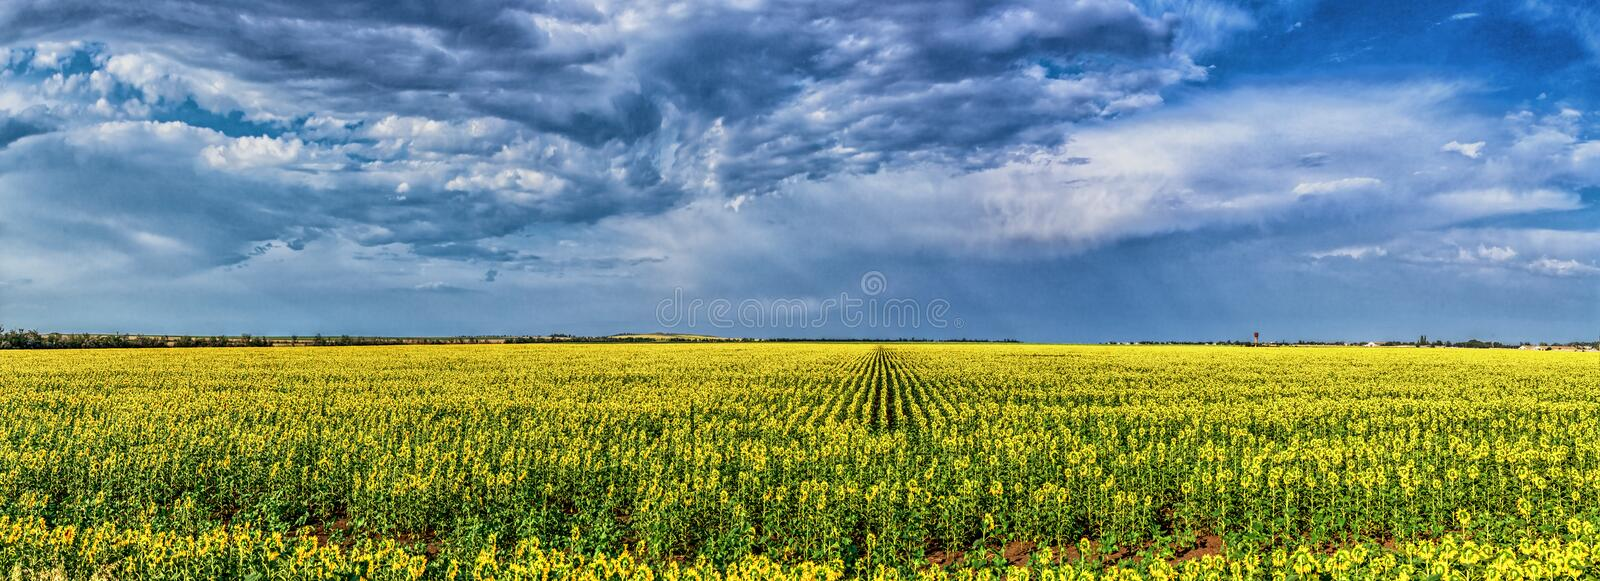 Download Field of sunflowers stock image. Image of cloud, colored - 34569205